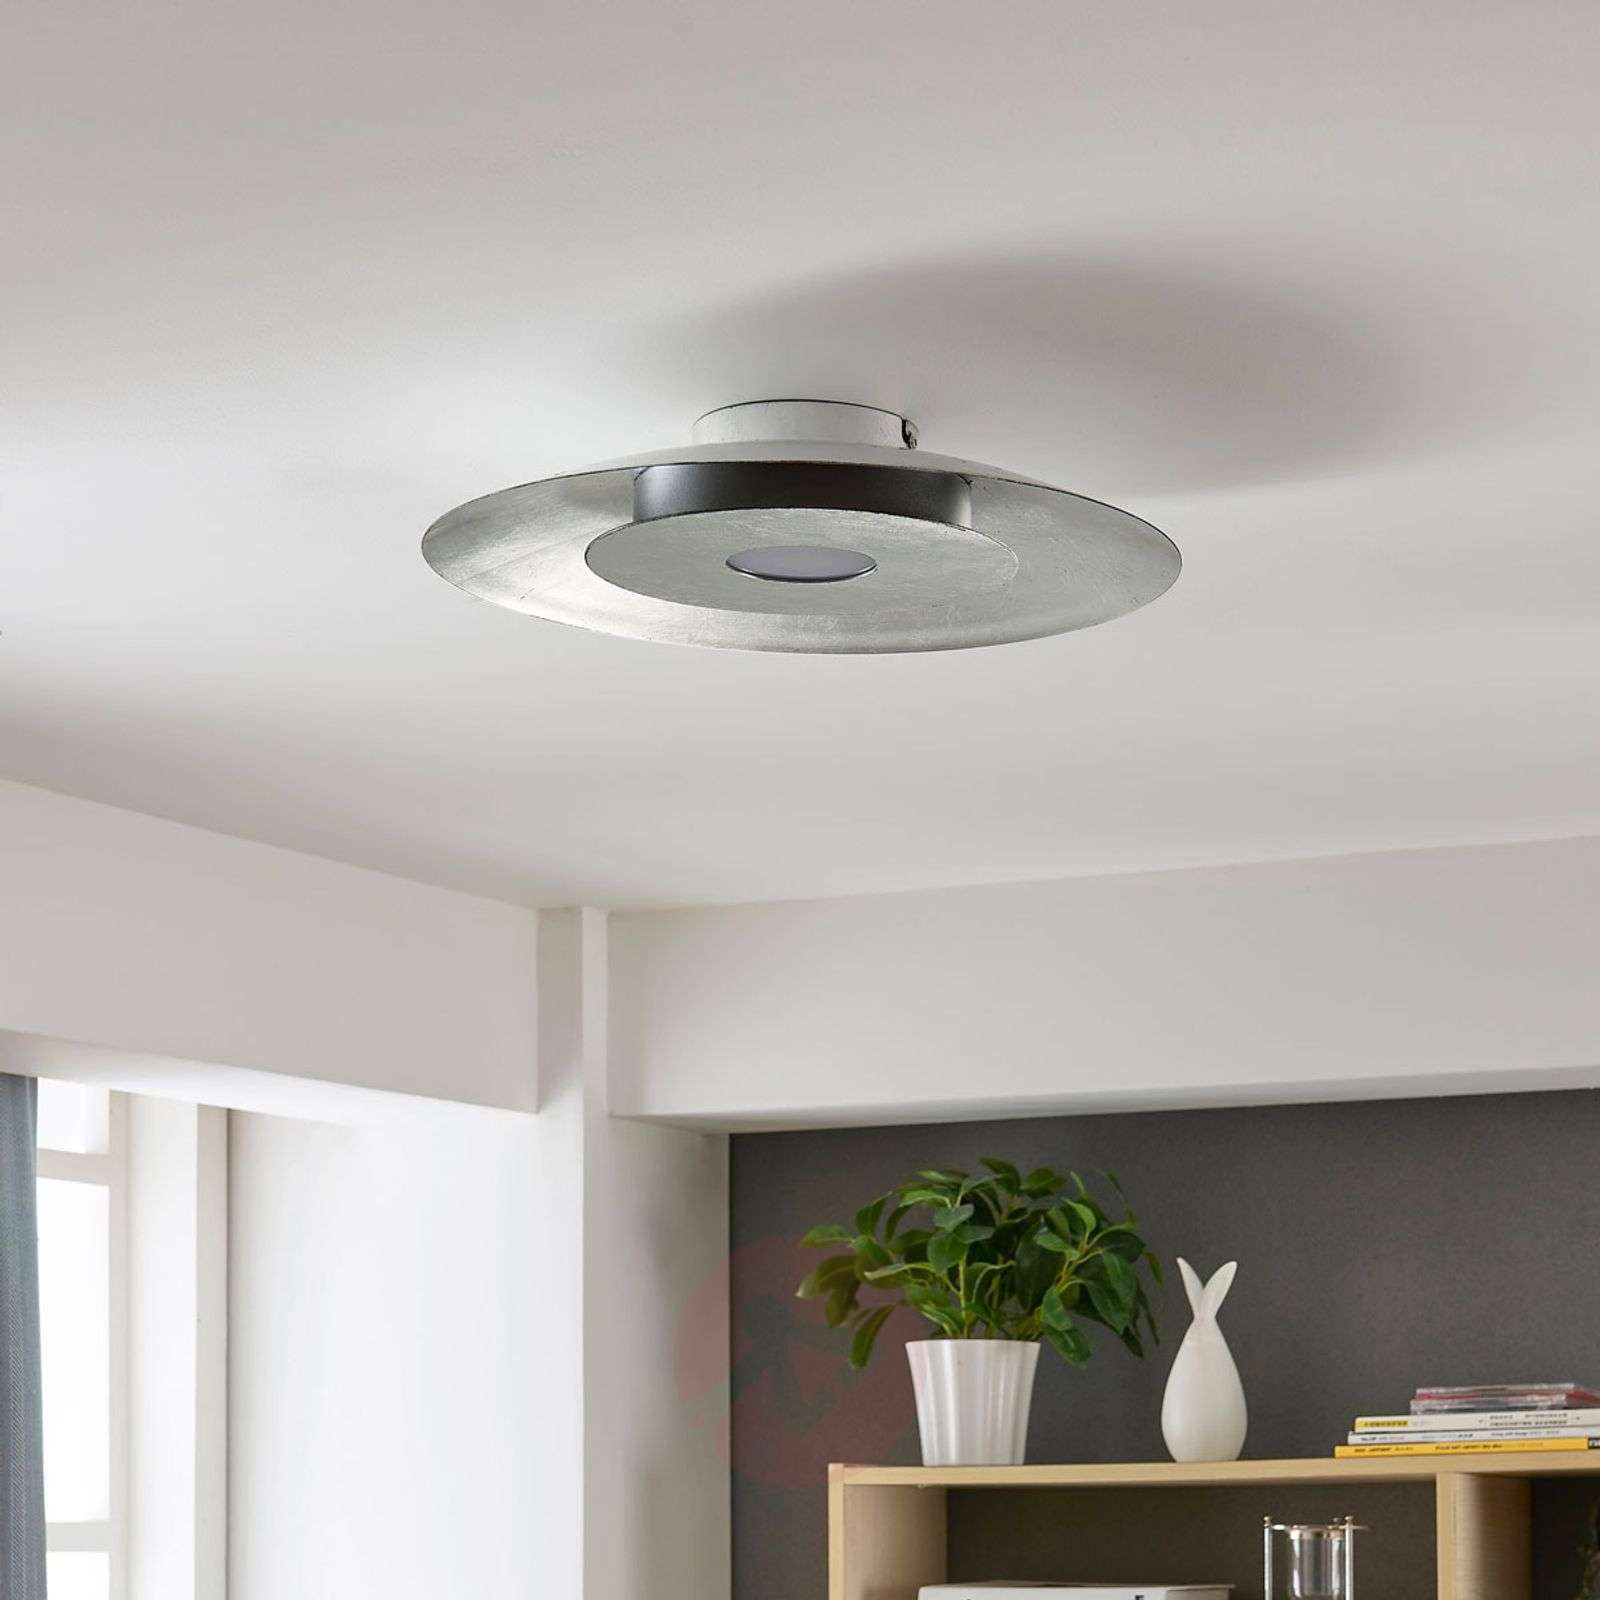 Daris led ceiling light with silver foil lights daris led ceiling light with silver foil 9621118 02 aloadofball Gallery